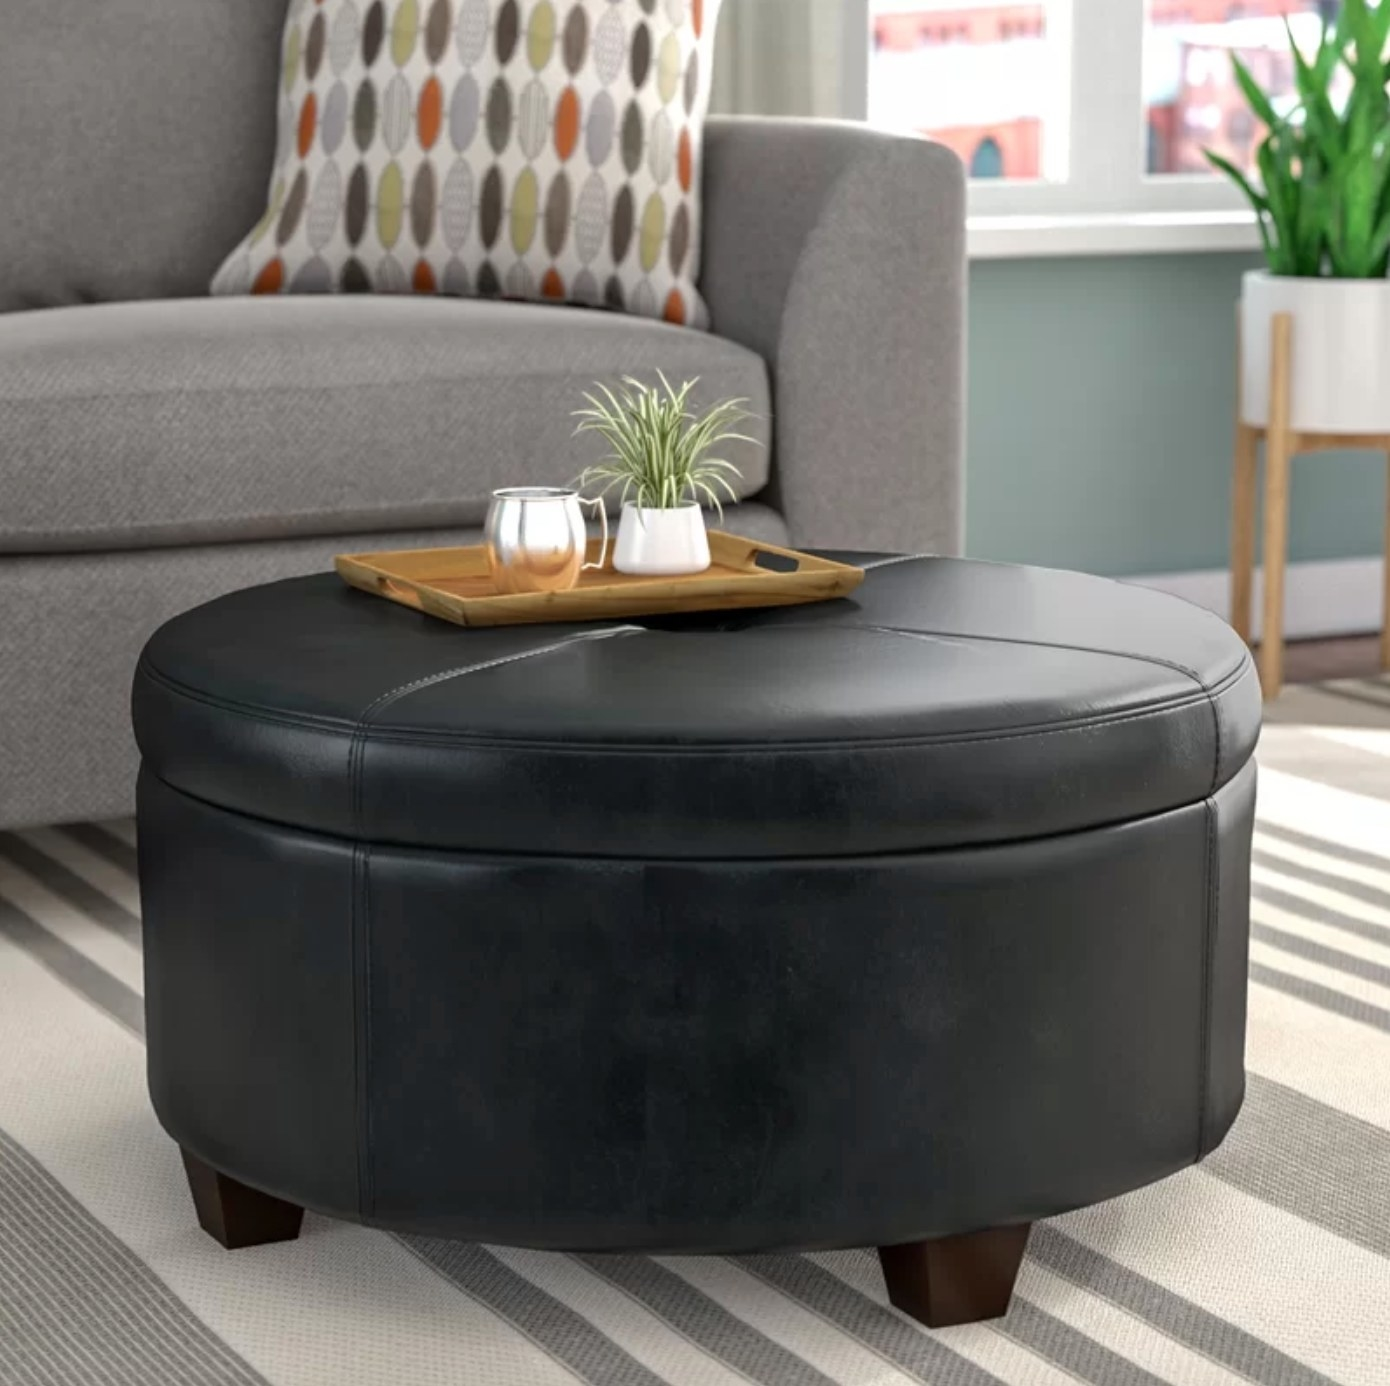 The faux leather ottoman in black